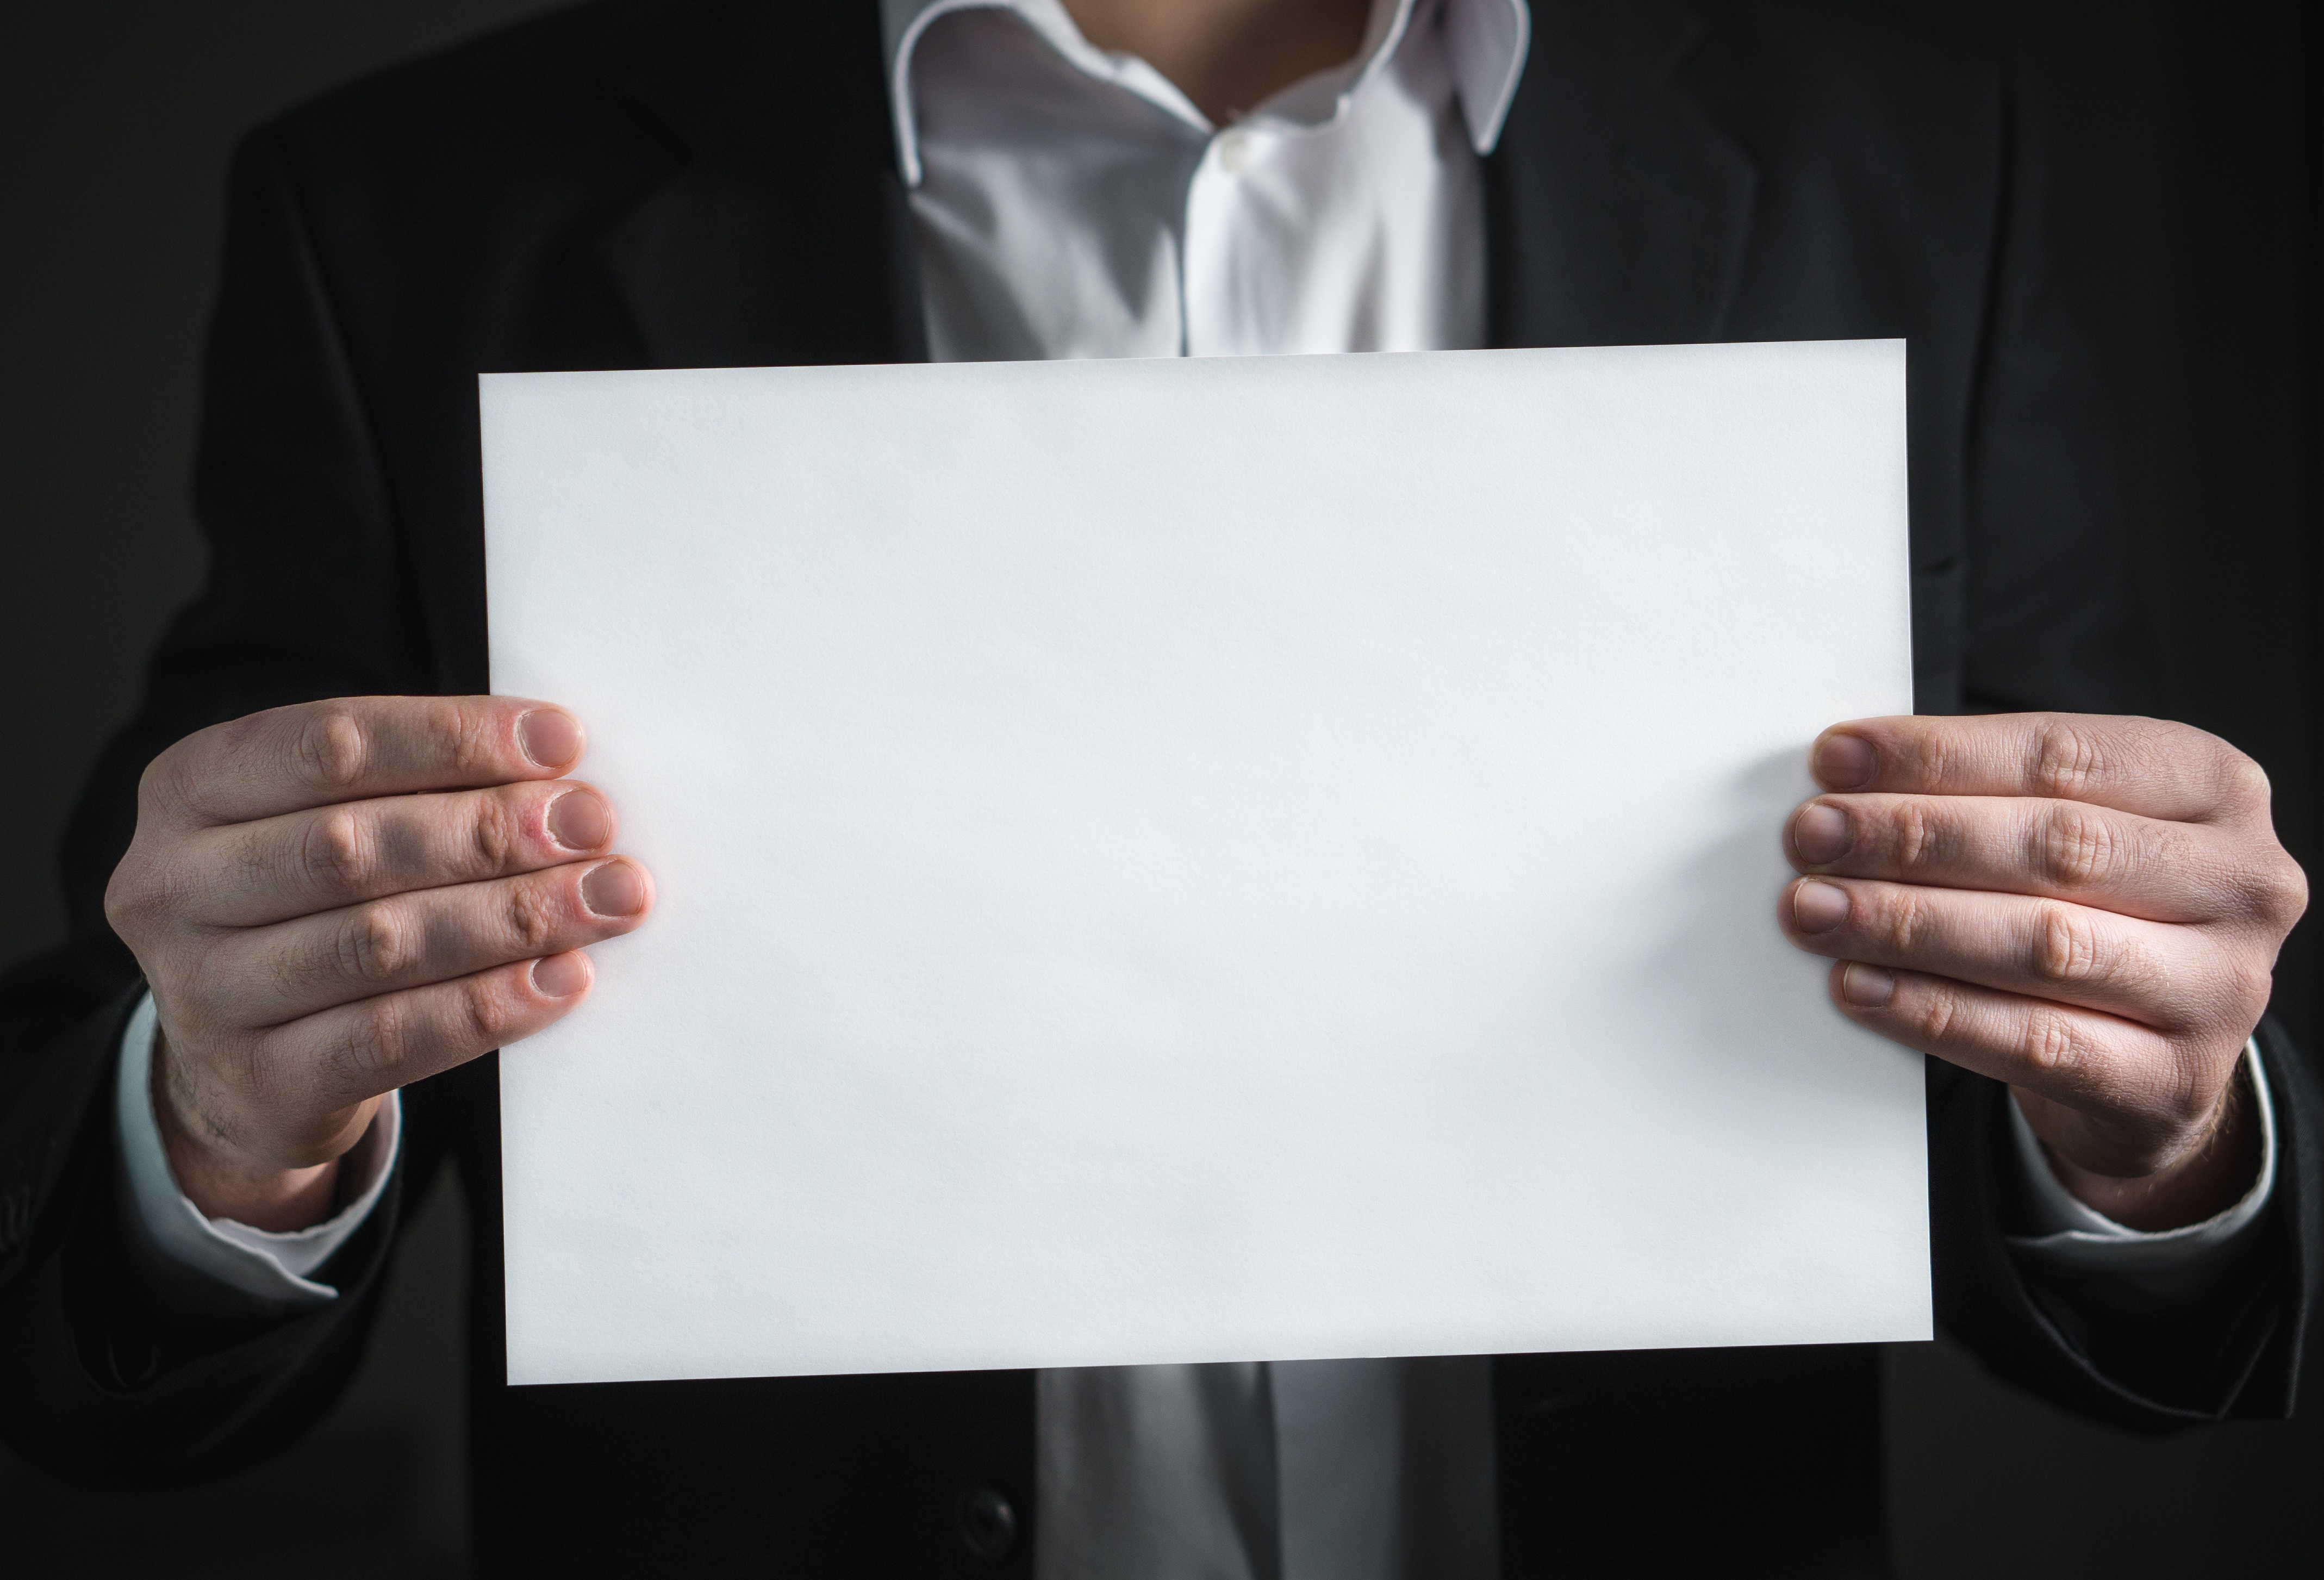 Holding a paper photo